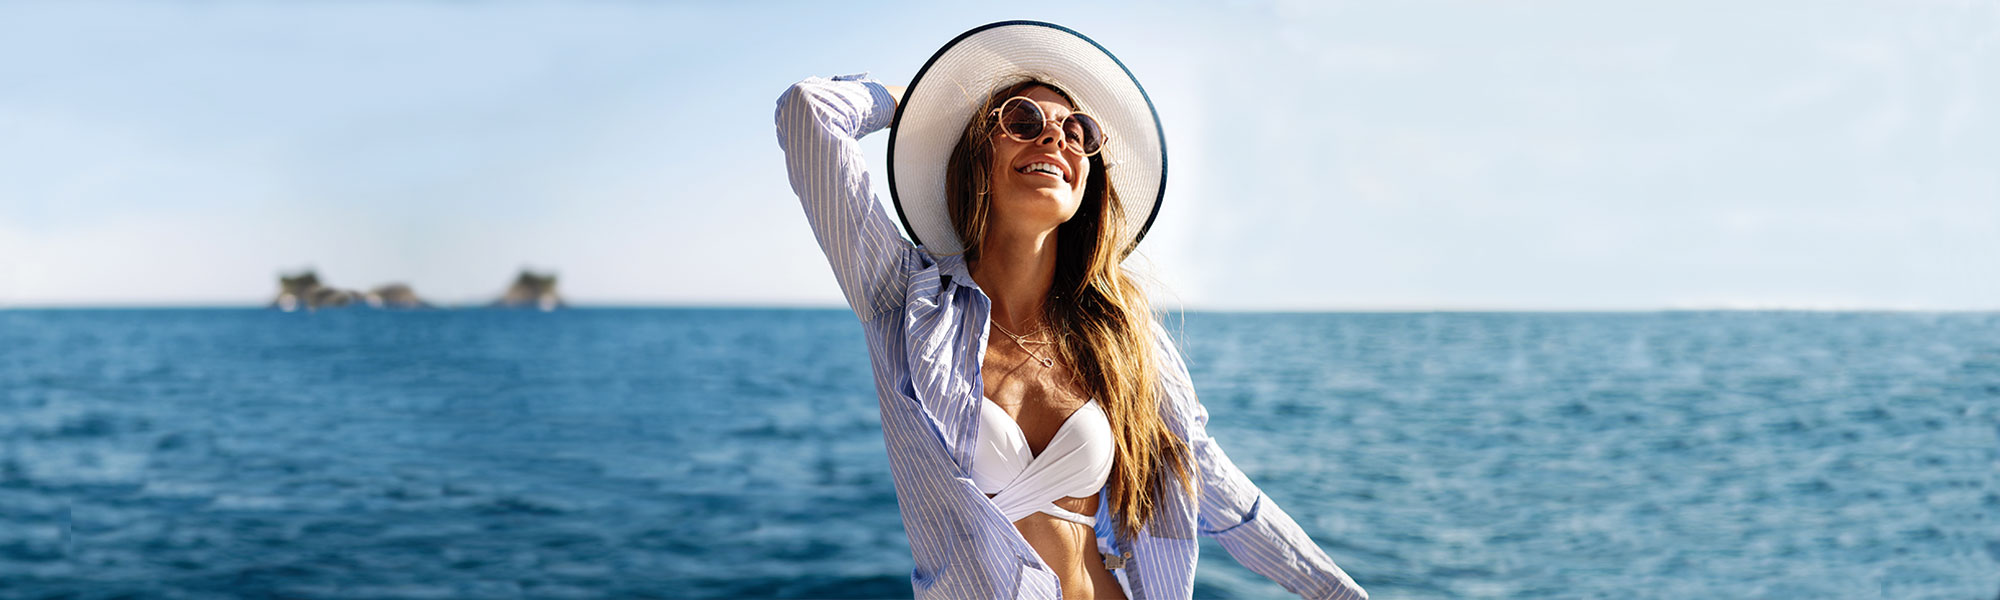 brown haired woman in sunglasses holding a white hat on her head and ocean in the background